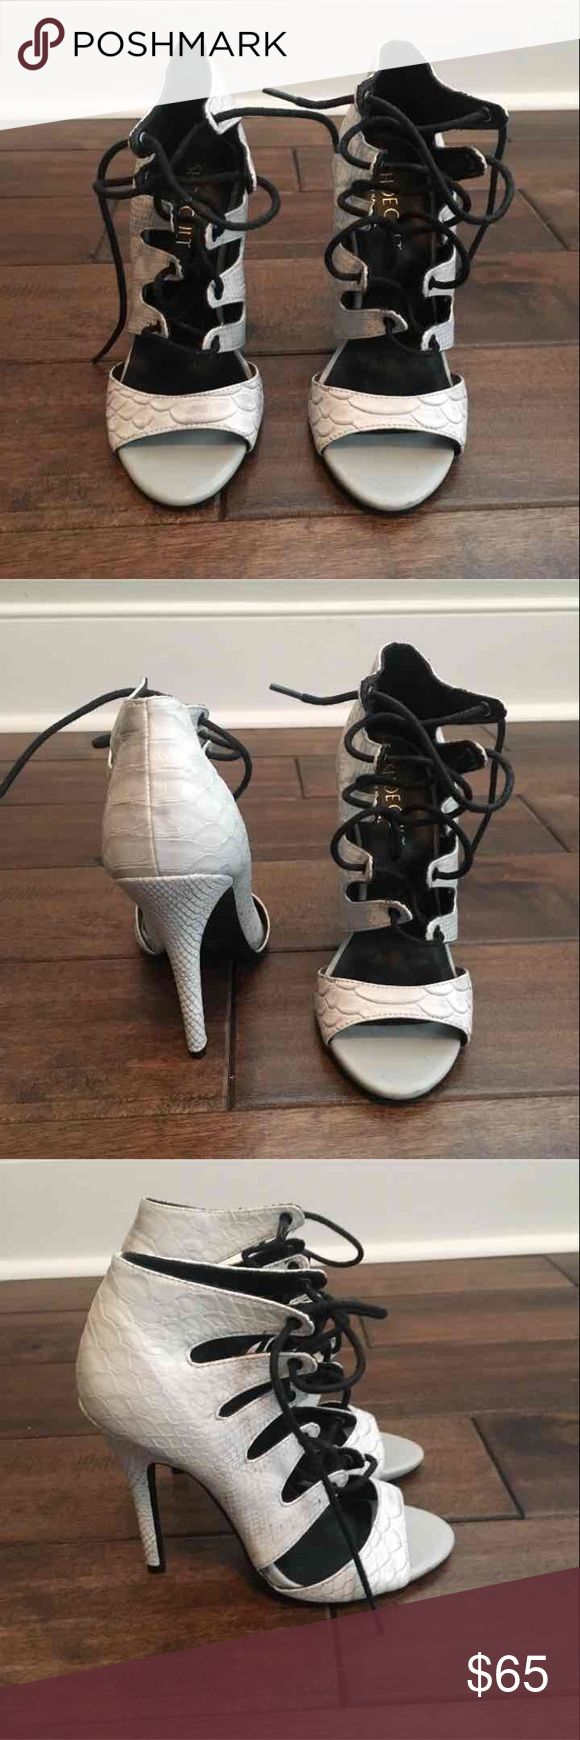 Shoe Cult tie up heels Super cute and stylish tie up heels. Nasty Gal Shoes Heels